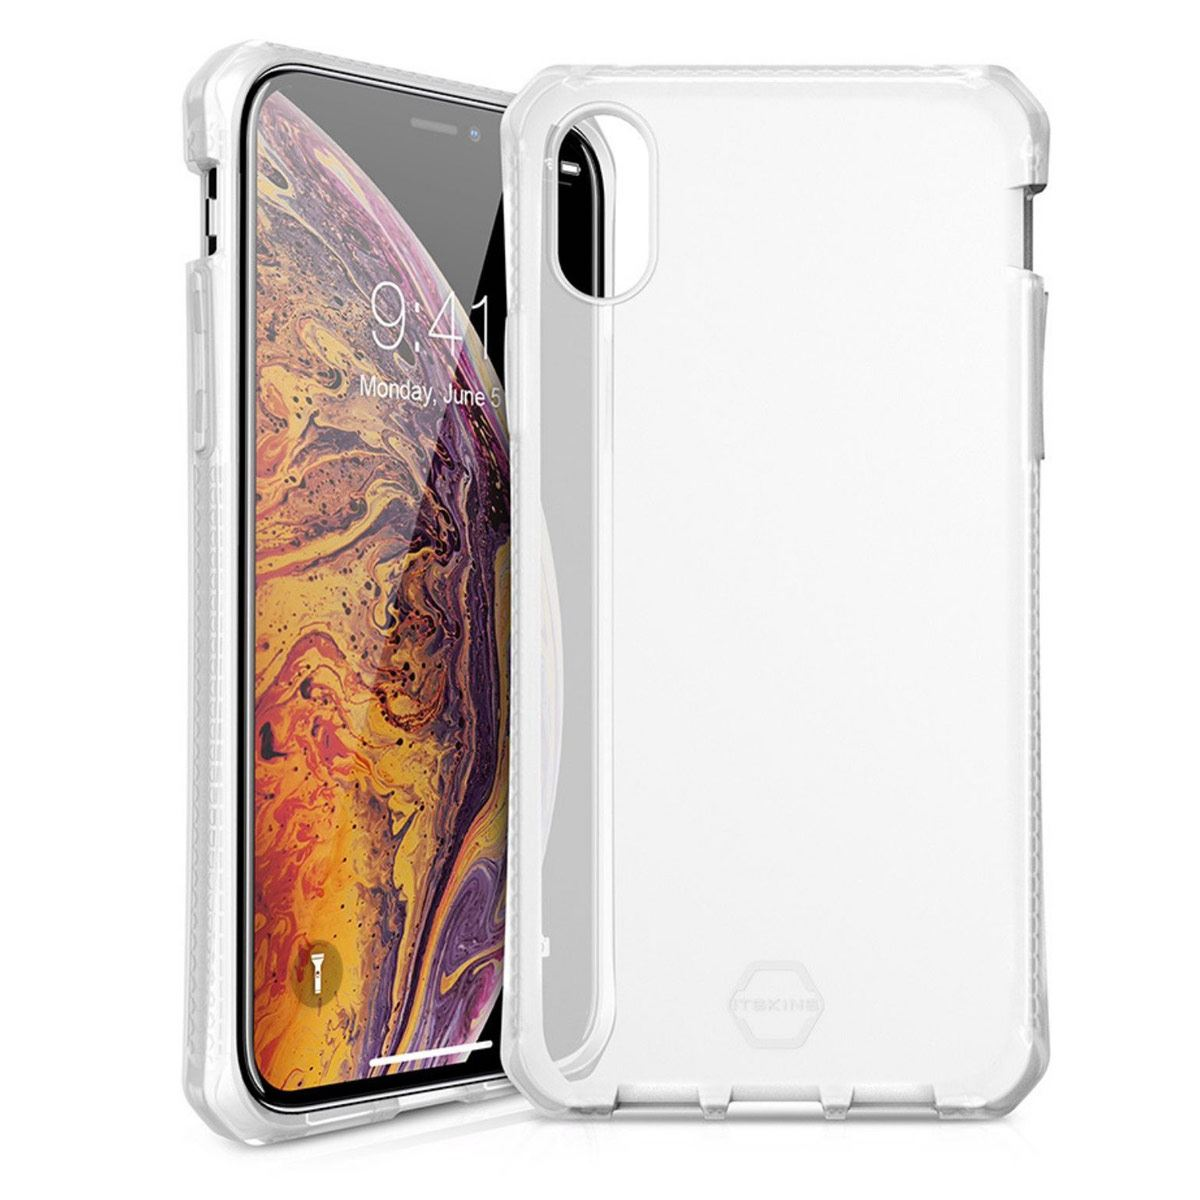 Funda Transparente para iPhone XS Max Spectrum Itskins